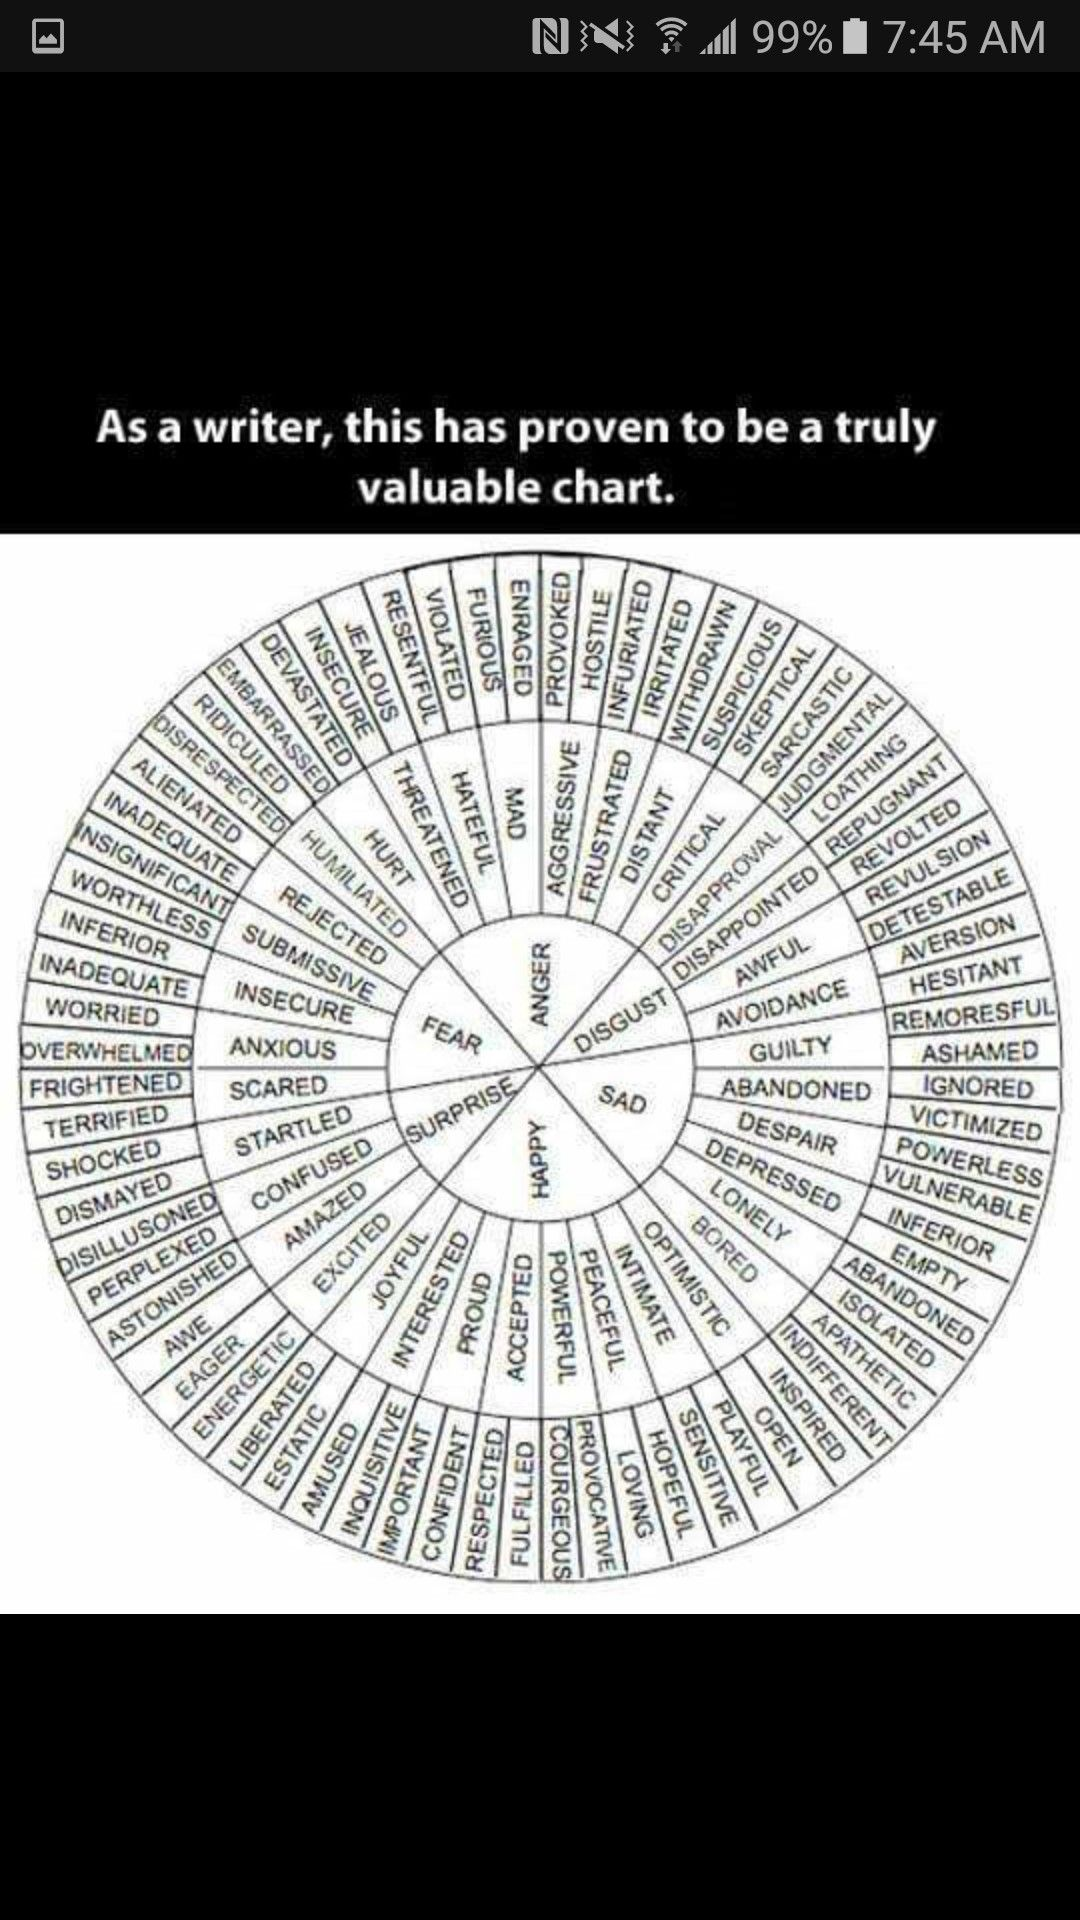 Pin by judit jasso on nina pinterest chart writing prompts and writing ideas writing advice writing help creative writing writing prompts writing inspiration game ideas story ideas june ccuart Images